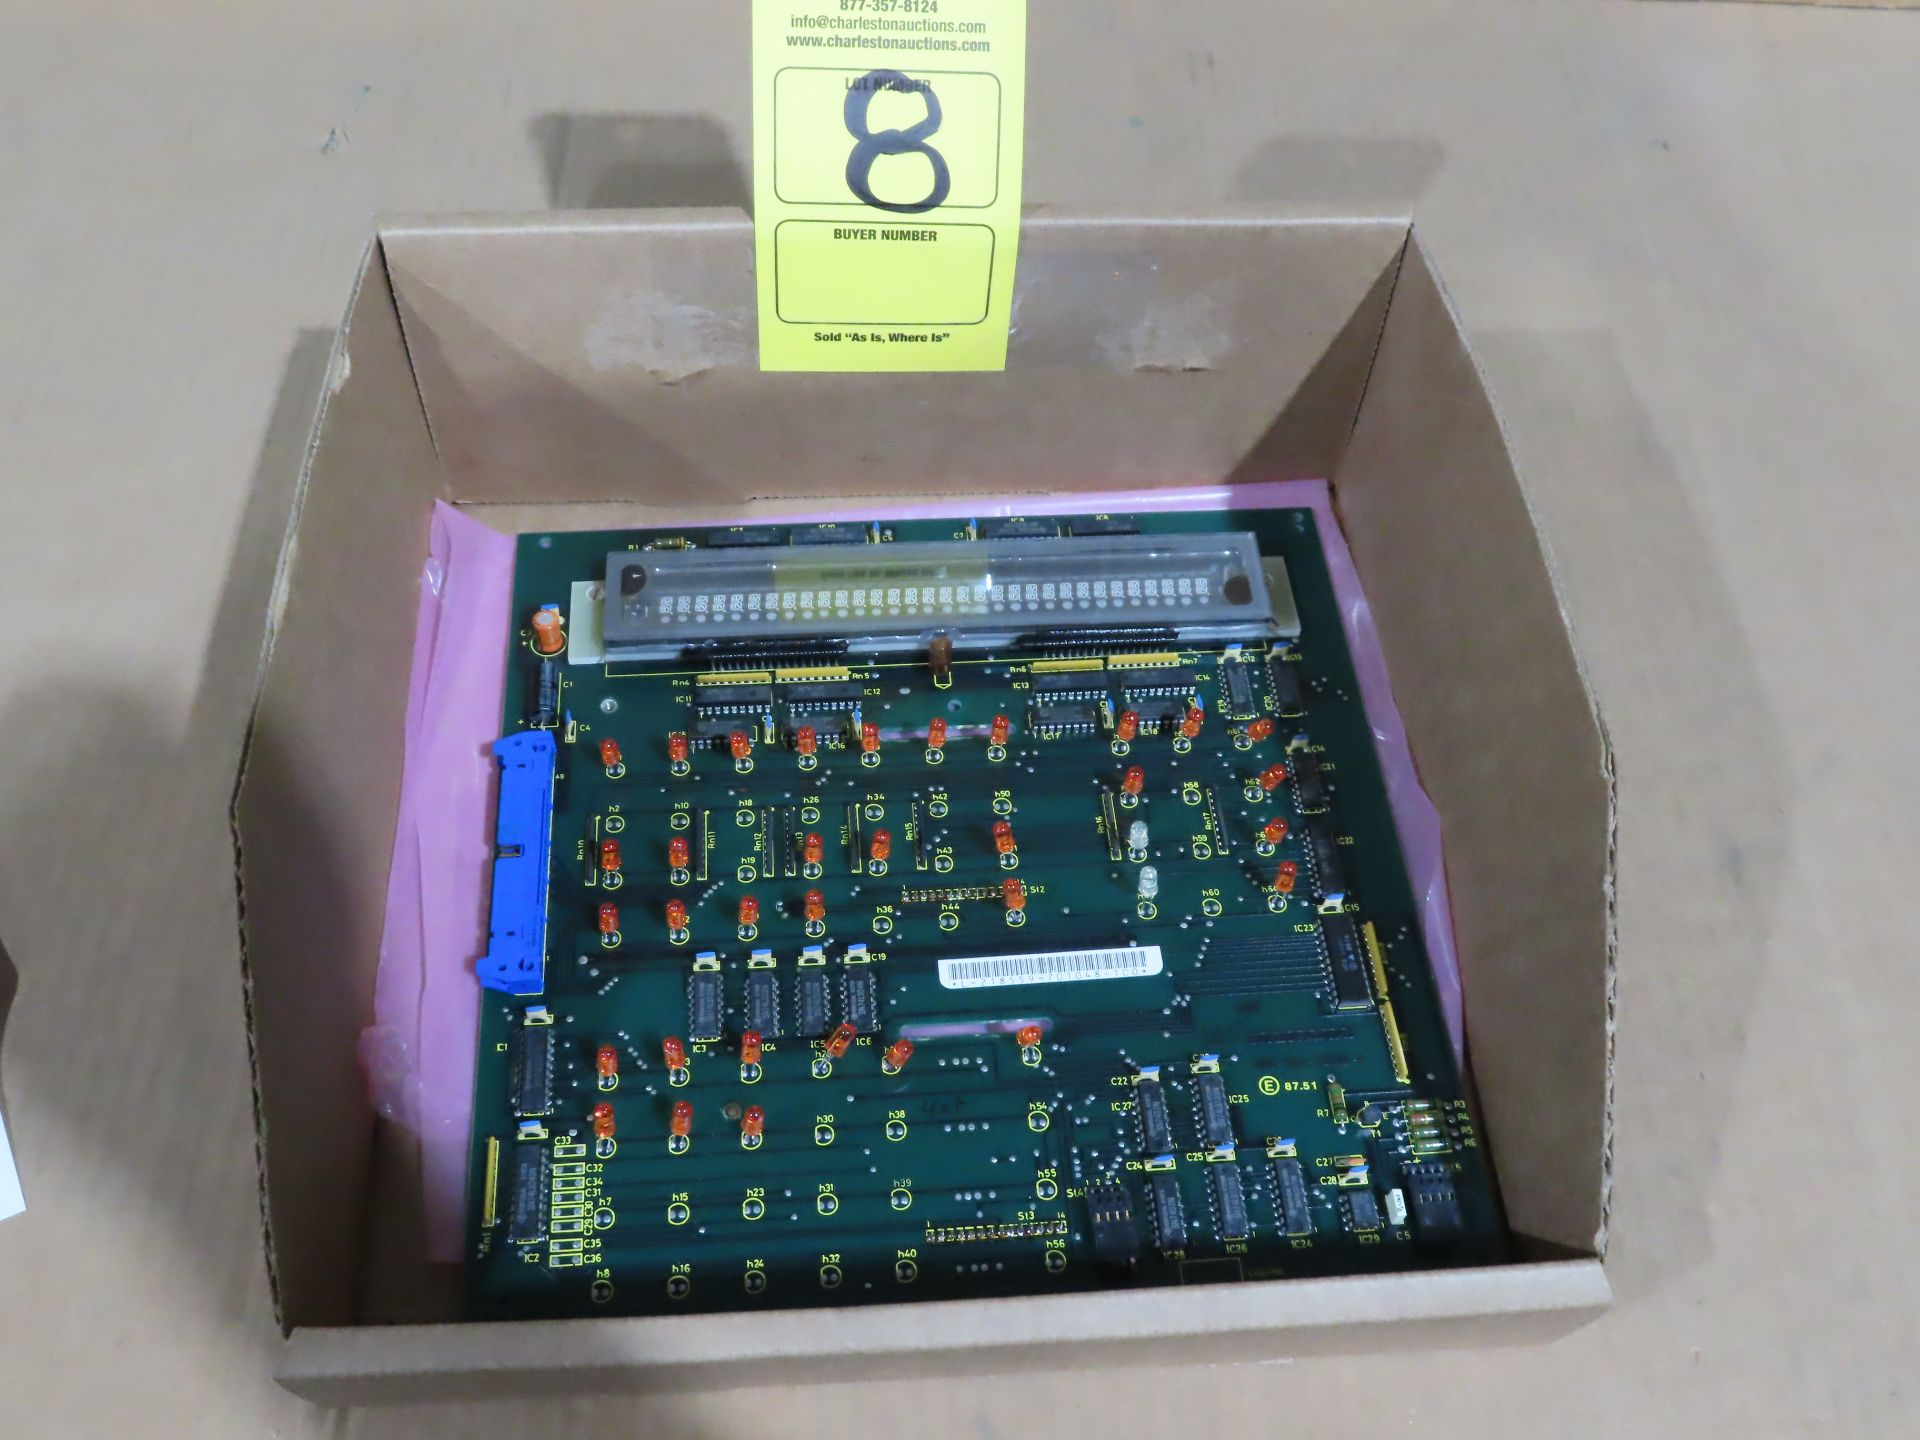 Lot 8 - Indramat control board model 109-468-3201b-4, as always, with Brolyn LLC auctions, all lots can be